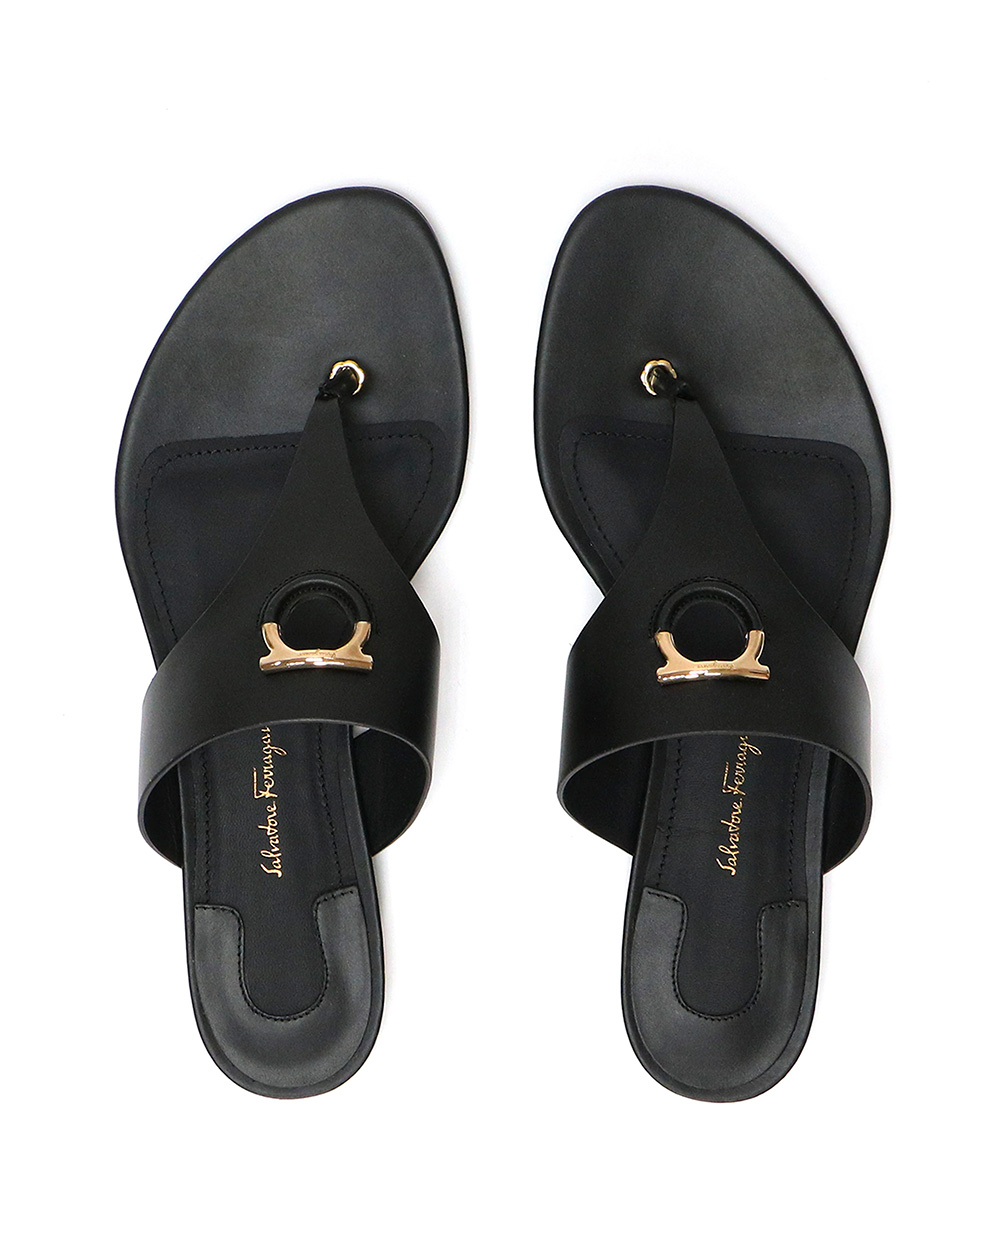 Enfola Leather Sandals 3